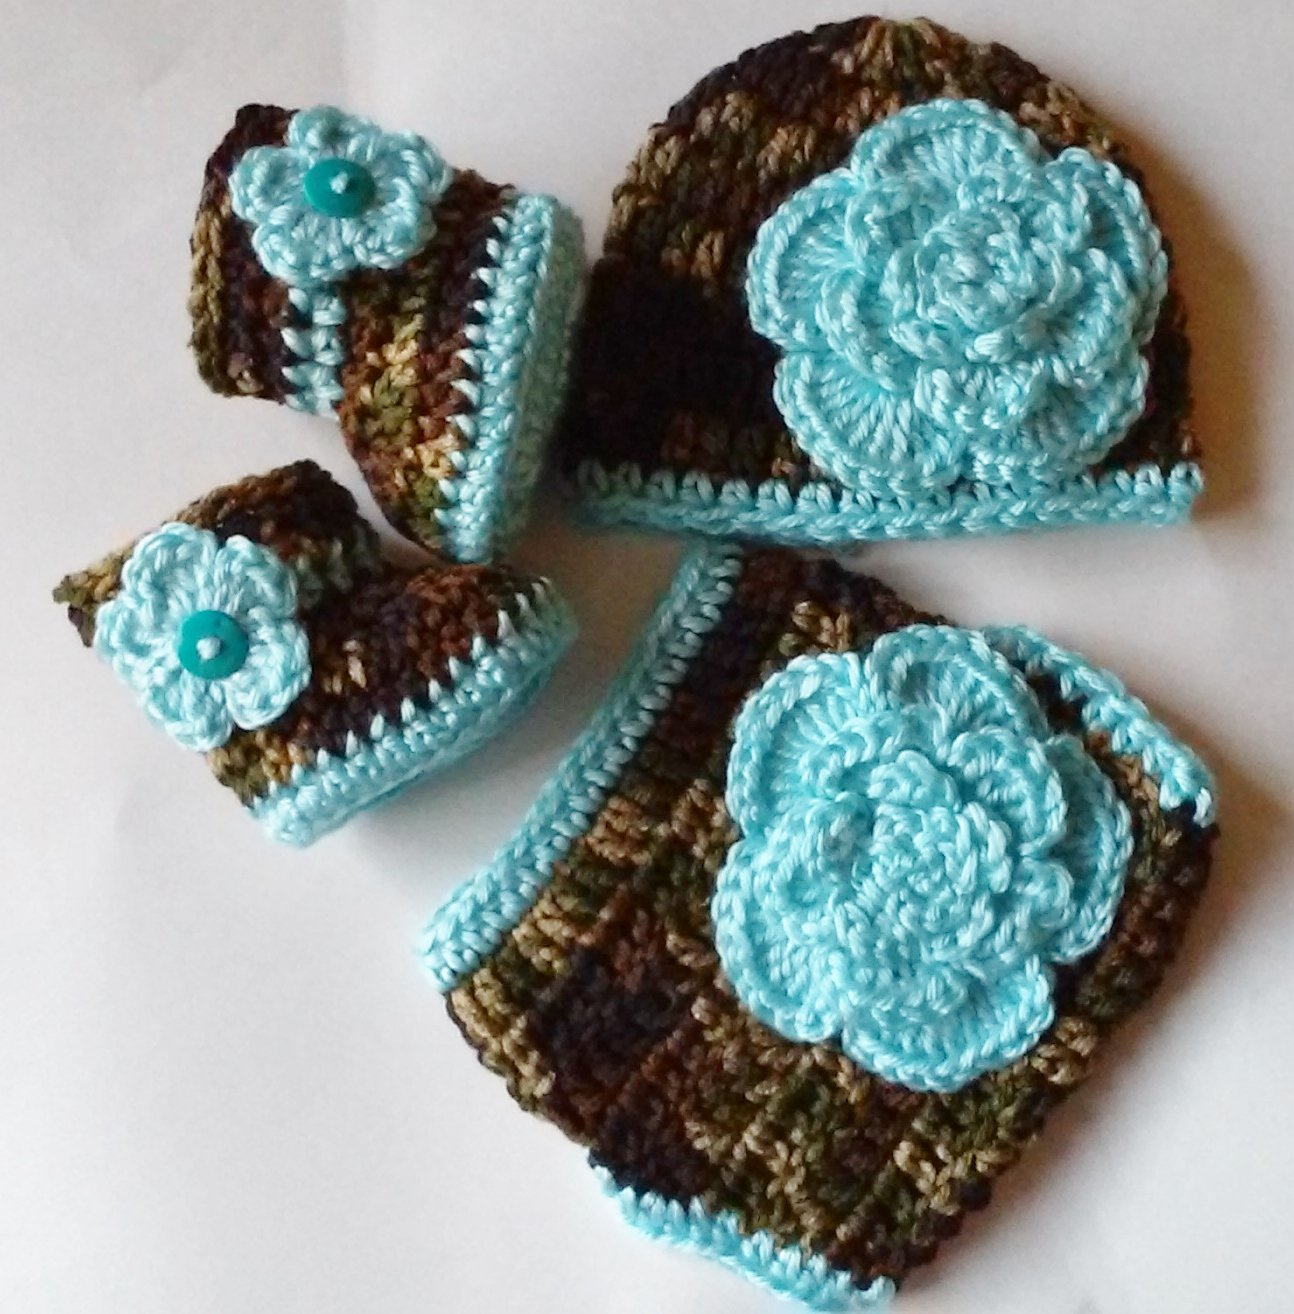 Crochet Dark Camo and Floral Diaper Cover Set in Teal Blue with Hat, Booties Newborn 0-3 Months